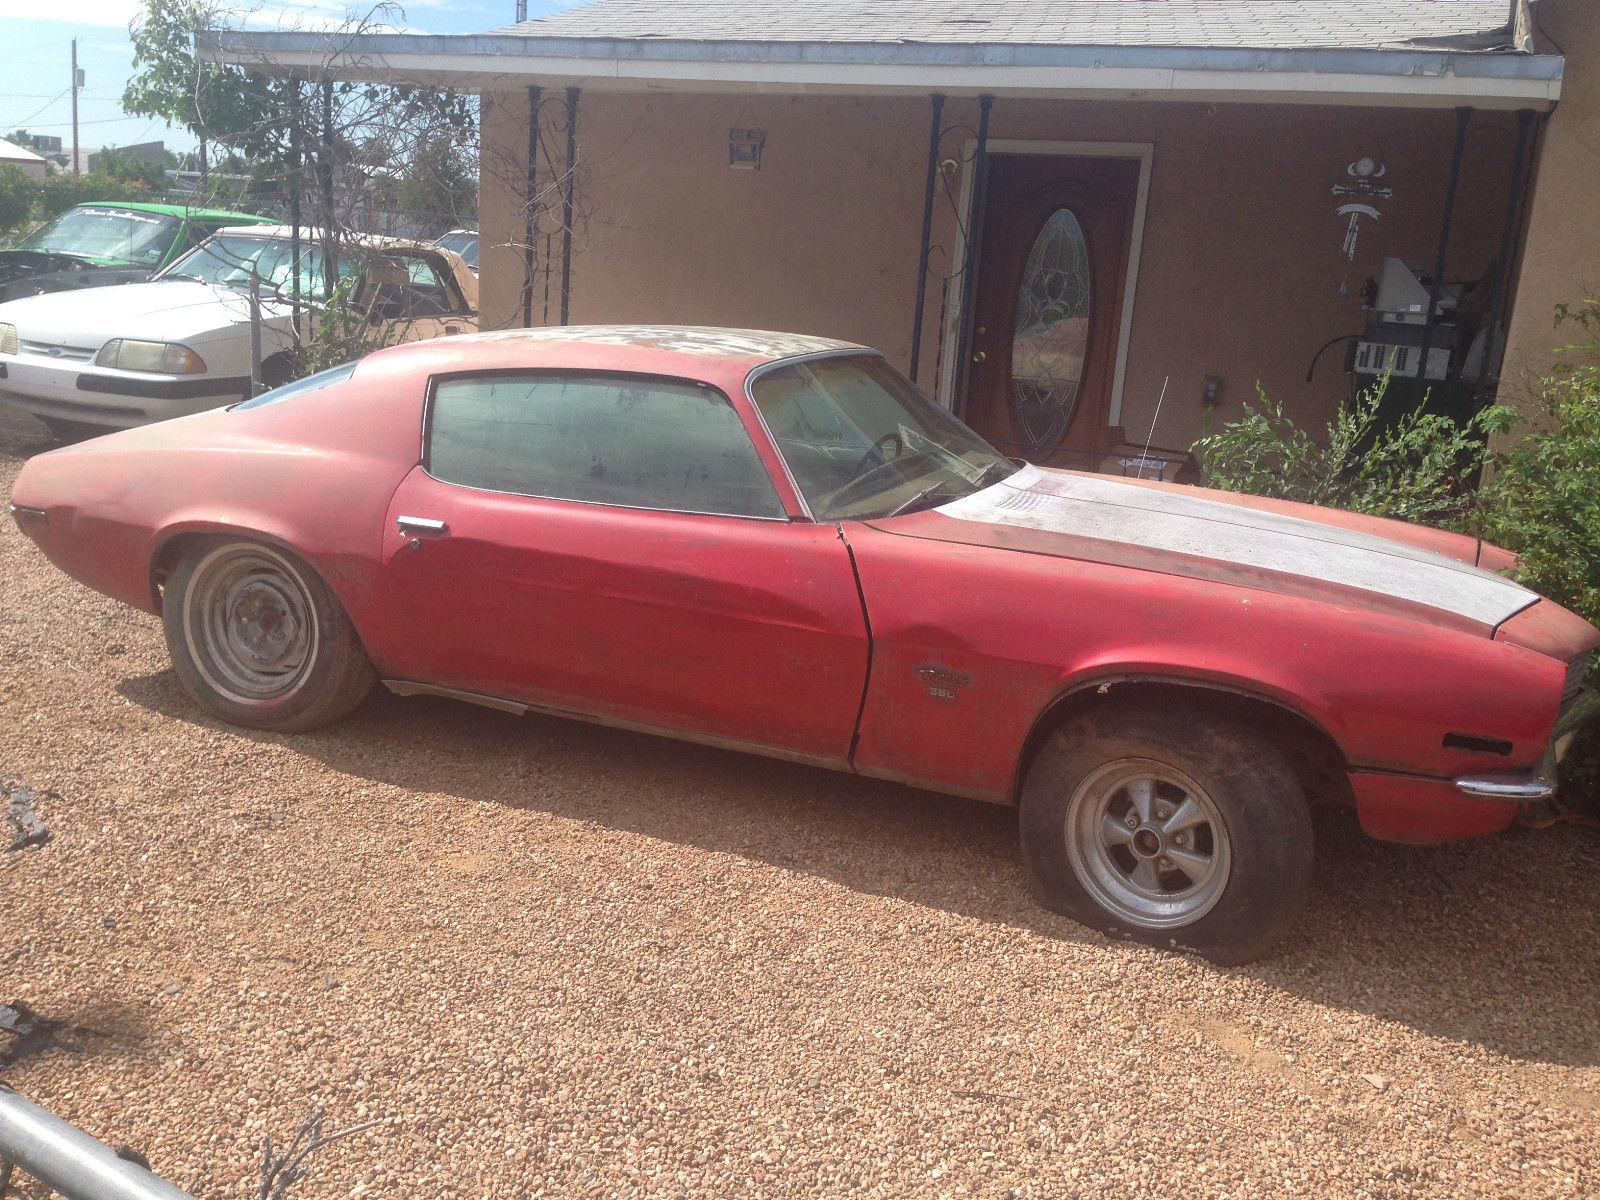 Project camaro for sale | College paper Academic Service ...